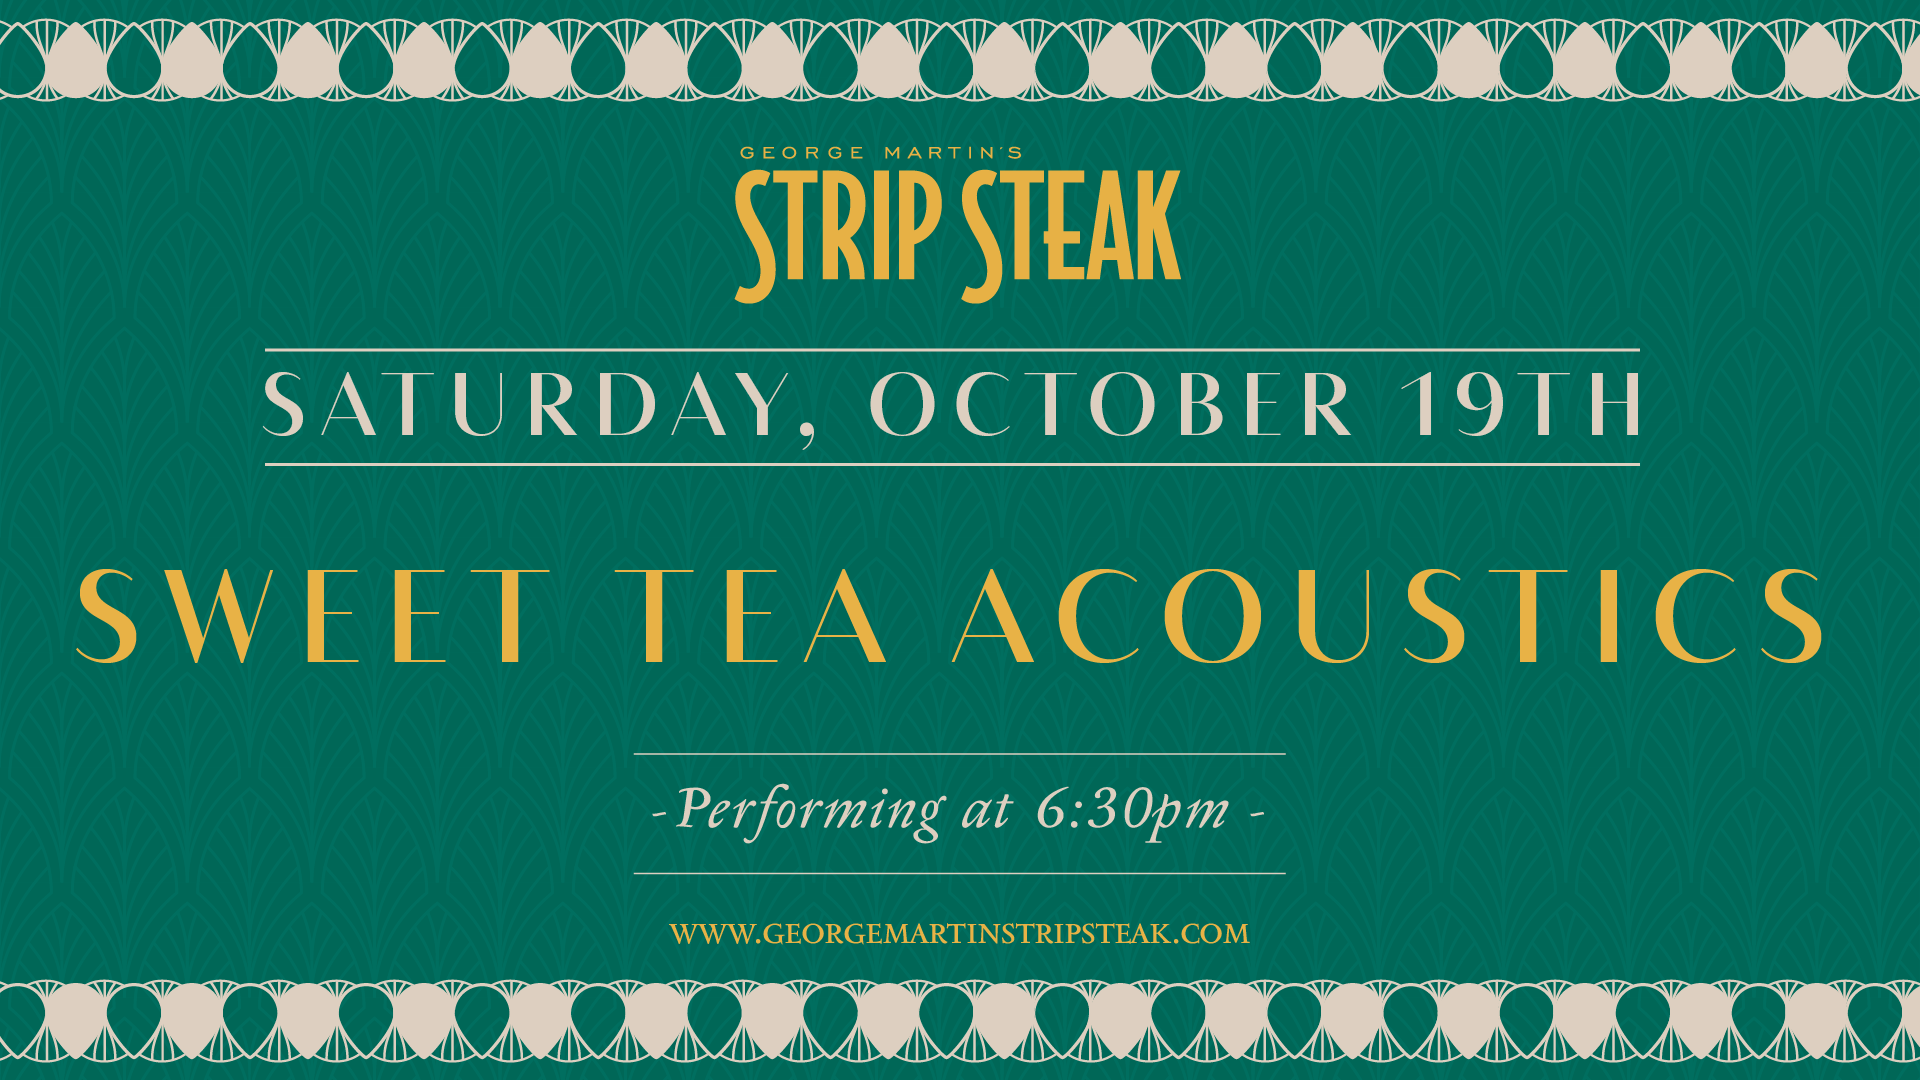 Flyer for live music with Sweet Tea Acoustics on Saturday, October 19th at 6:30pm.